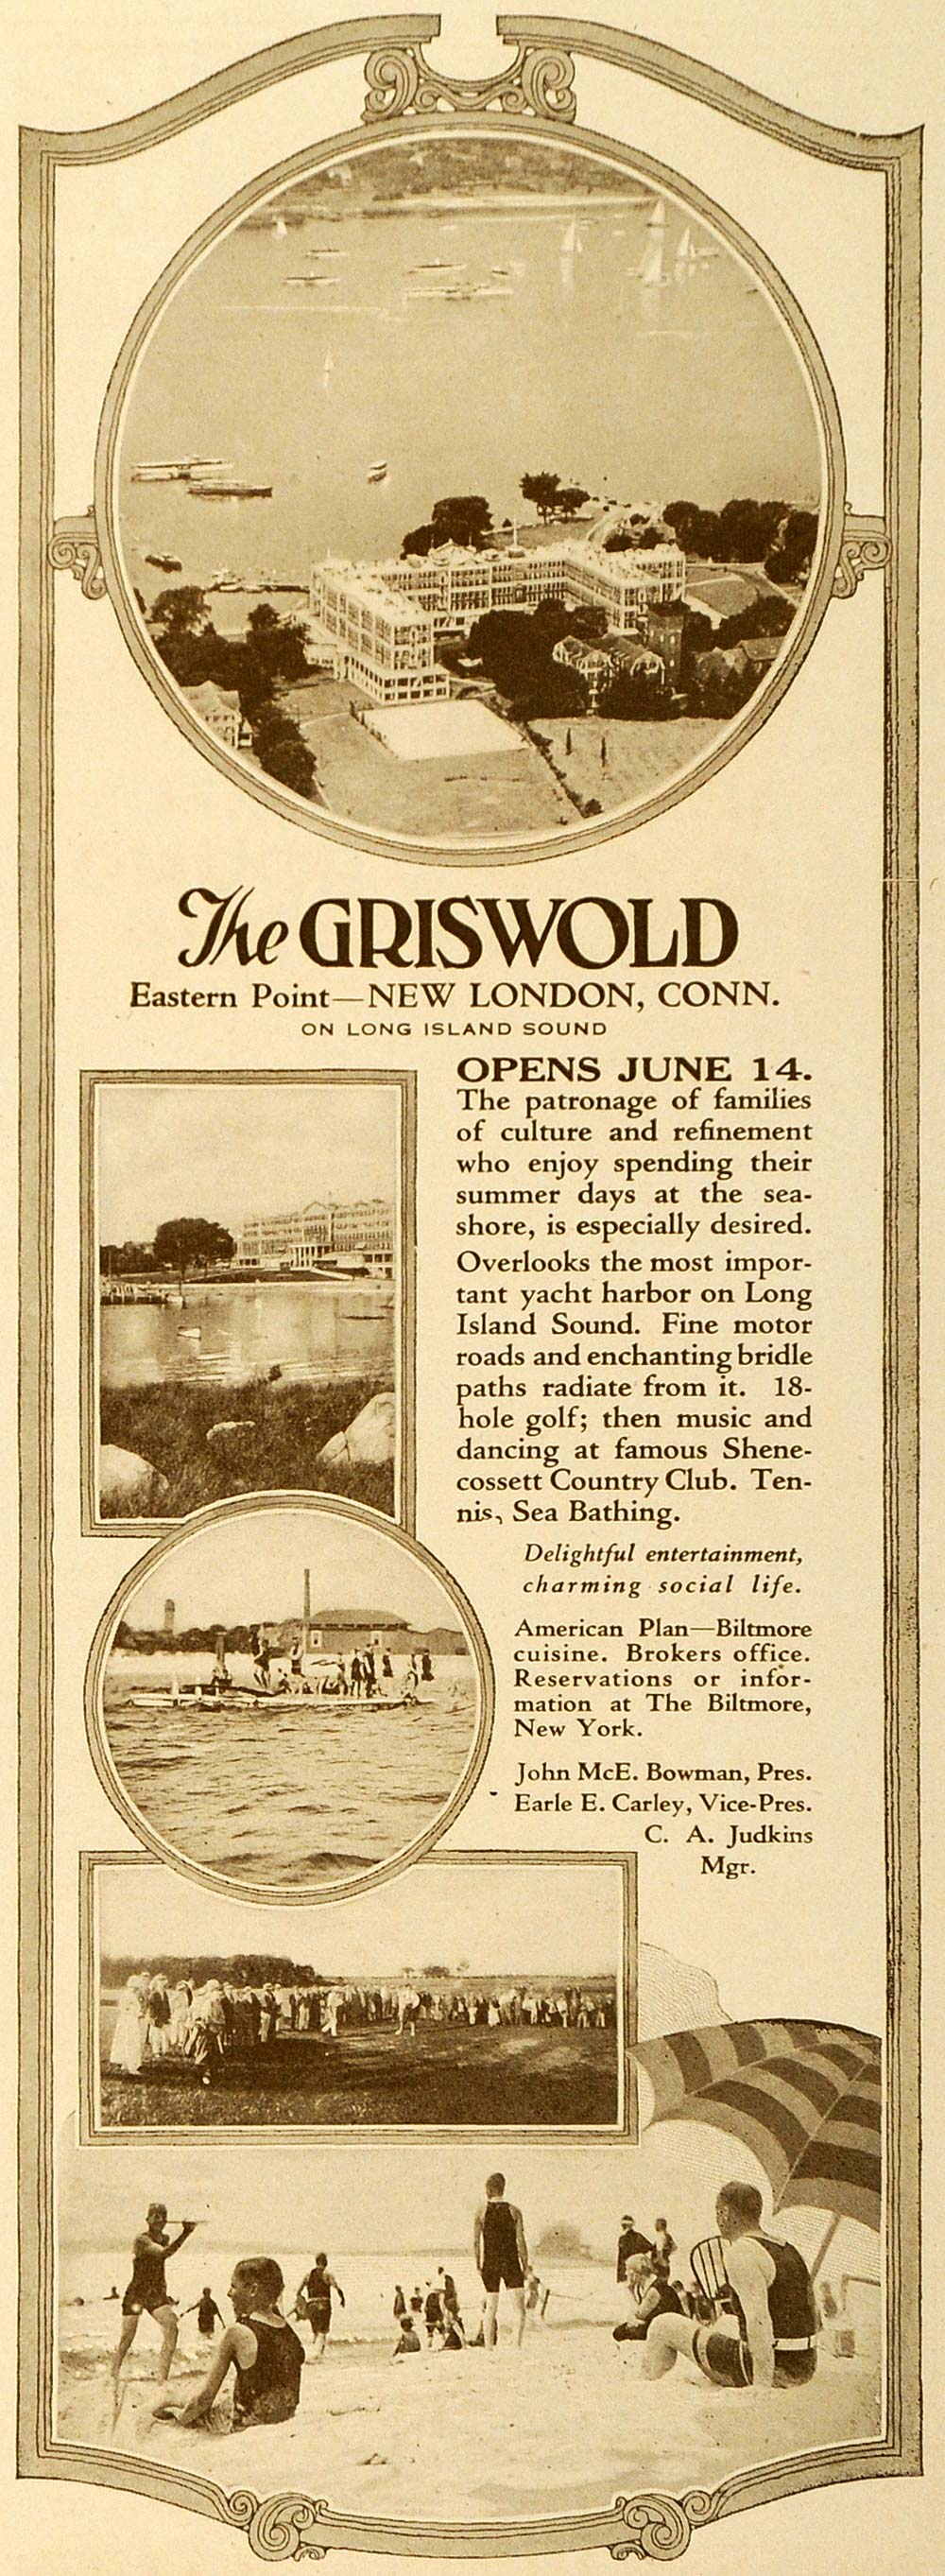 1923 Ad Griswold Hotel Resort New London Connecticut - ORIGINAL ADVERTISING TRV1